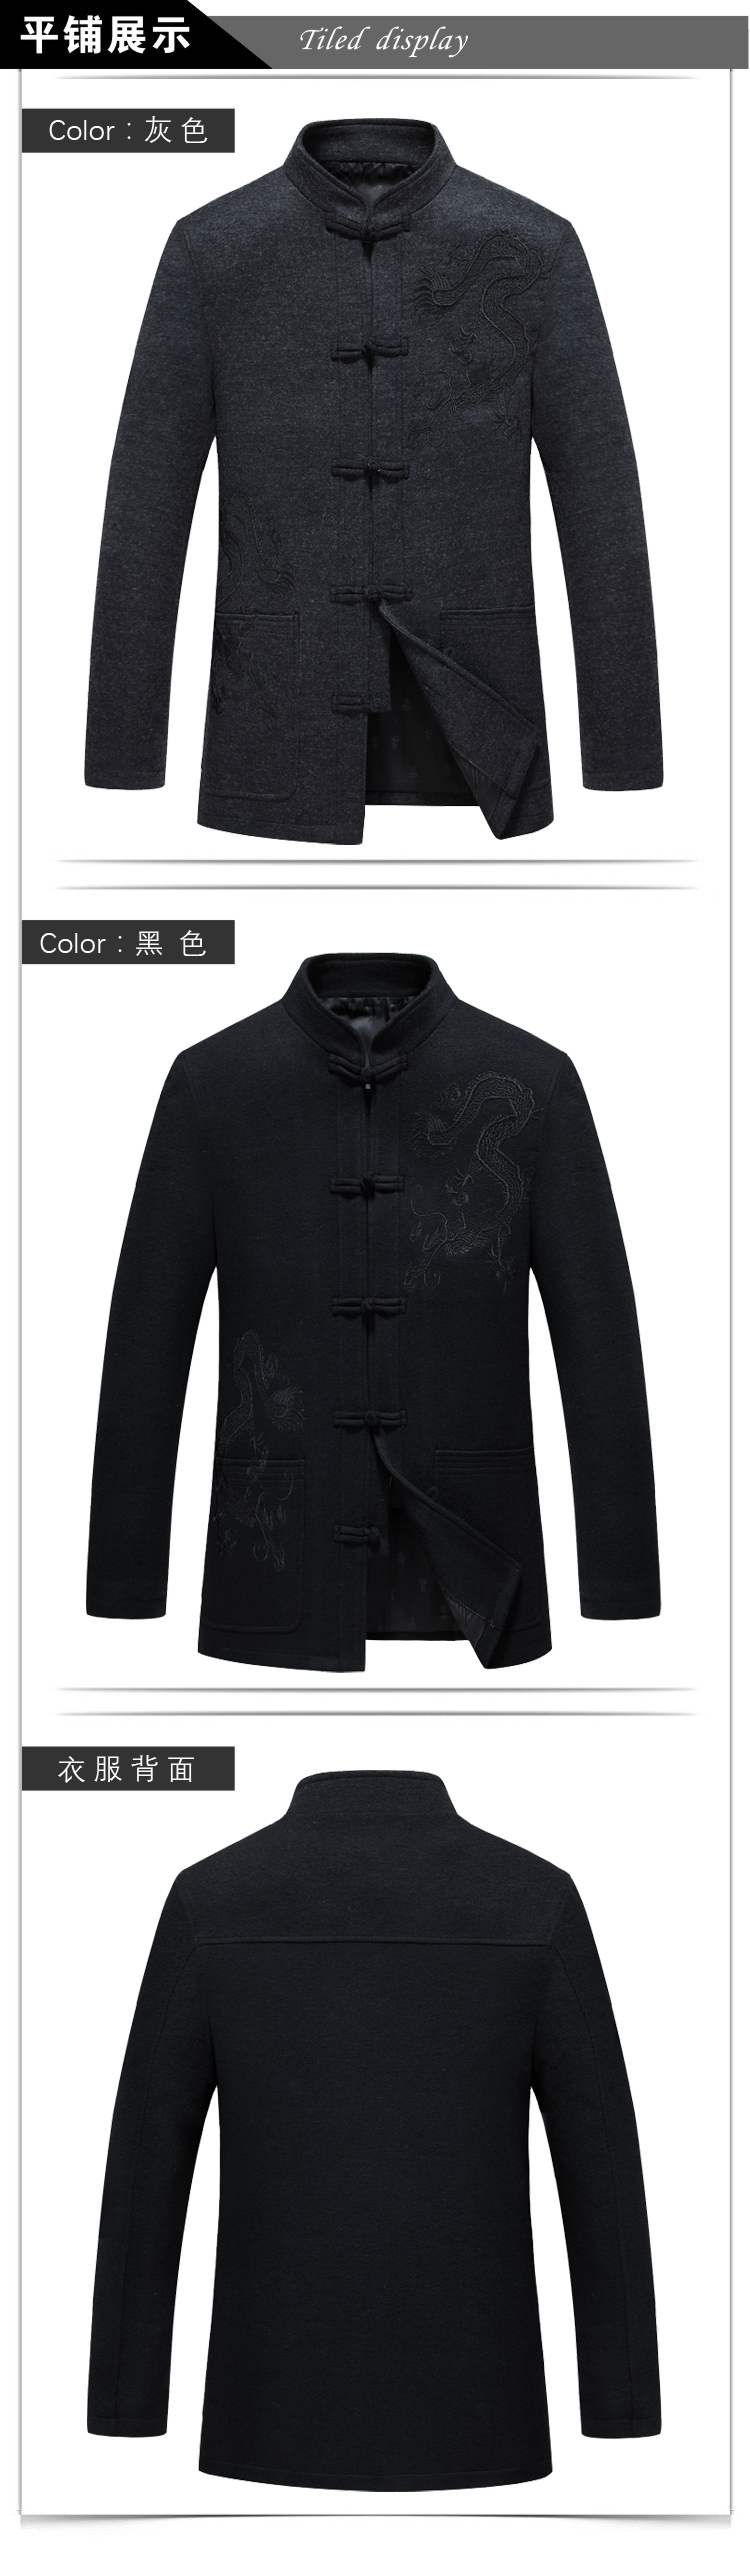 WAEOLSA Chinese Men Oriental Tunic Jackets Wool Blends Tangzhuang Coats Man Dragon Embroidery Tweed Suit Coat (6)